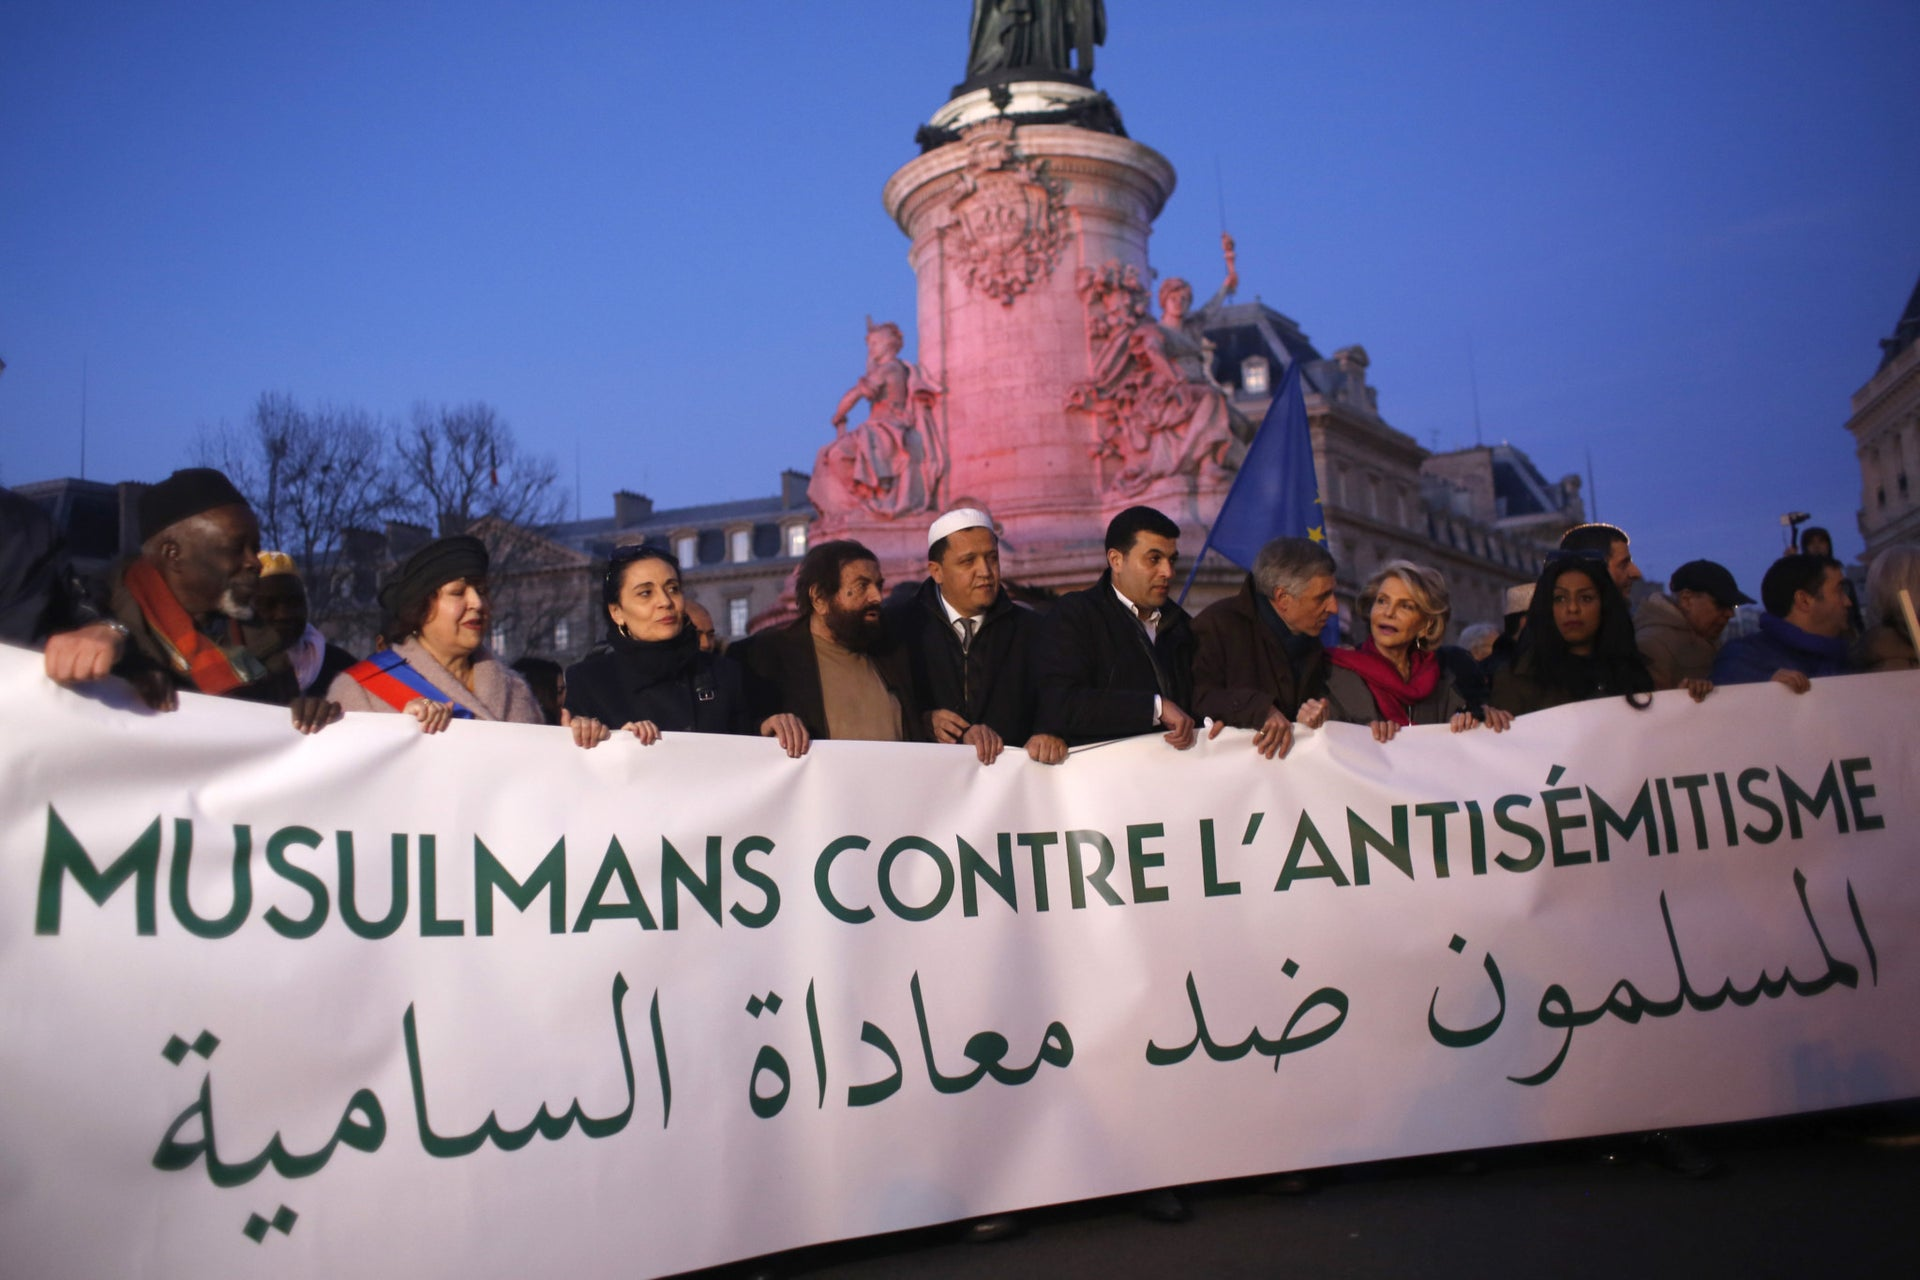 French Muslim gather at the Republique square to protest against anti-Semitism in Paris, France, Feb. 19, 2019. In Paris and dozens of other French cities, ordinary citizens and officials across the political spectrum geared up Tuesday to march and rally against anti-Semitism, following a series of anti-Semitic acts that shocked the nation. (AP Photo/Thibault Camus)  מוסלמים צרפתים מפגינים נגד אנטישמיות, פברואר 2019